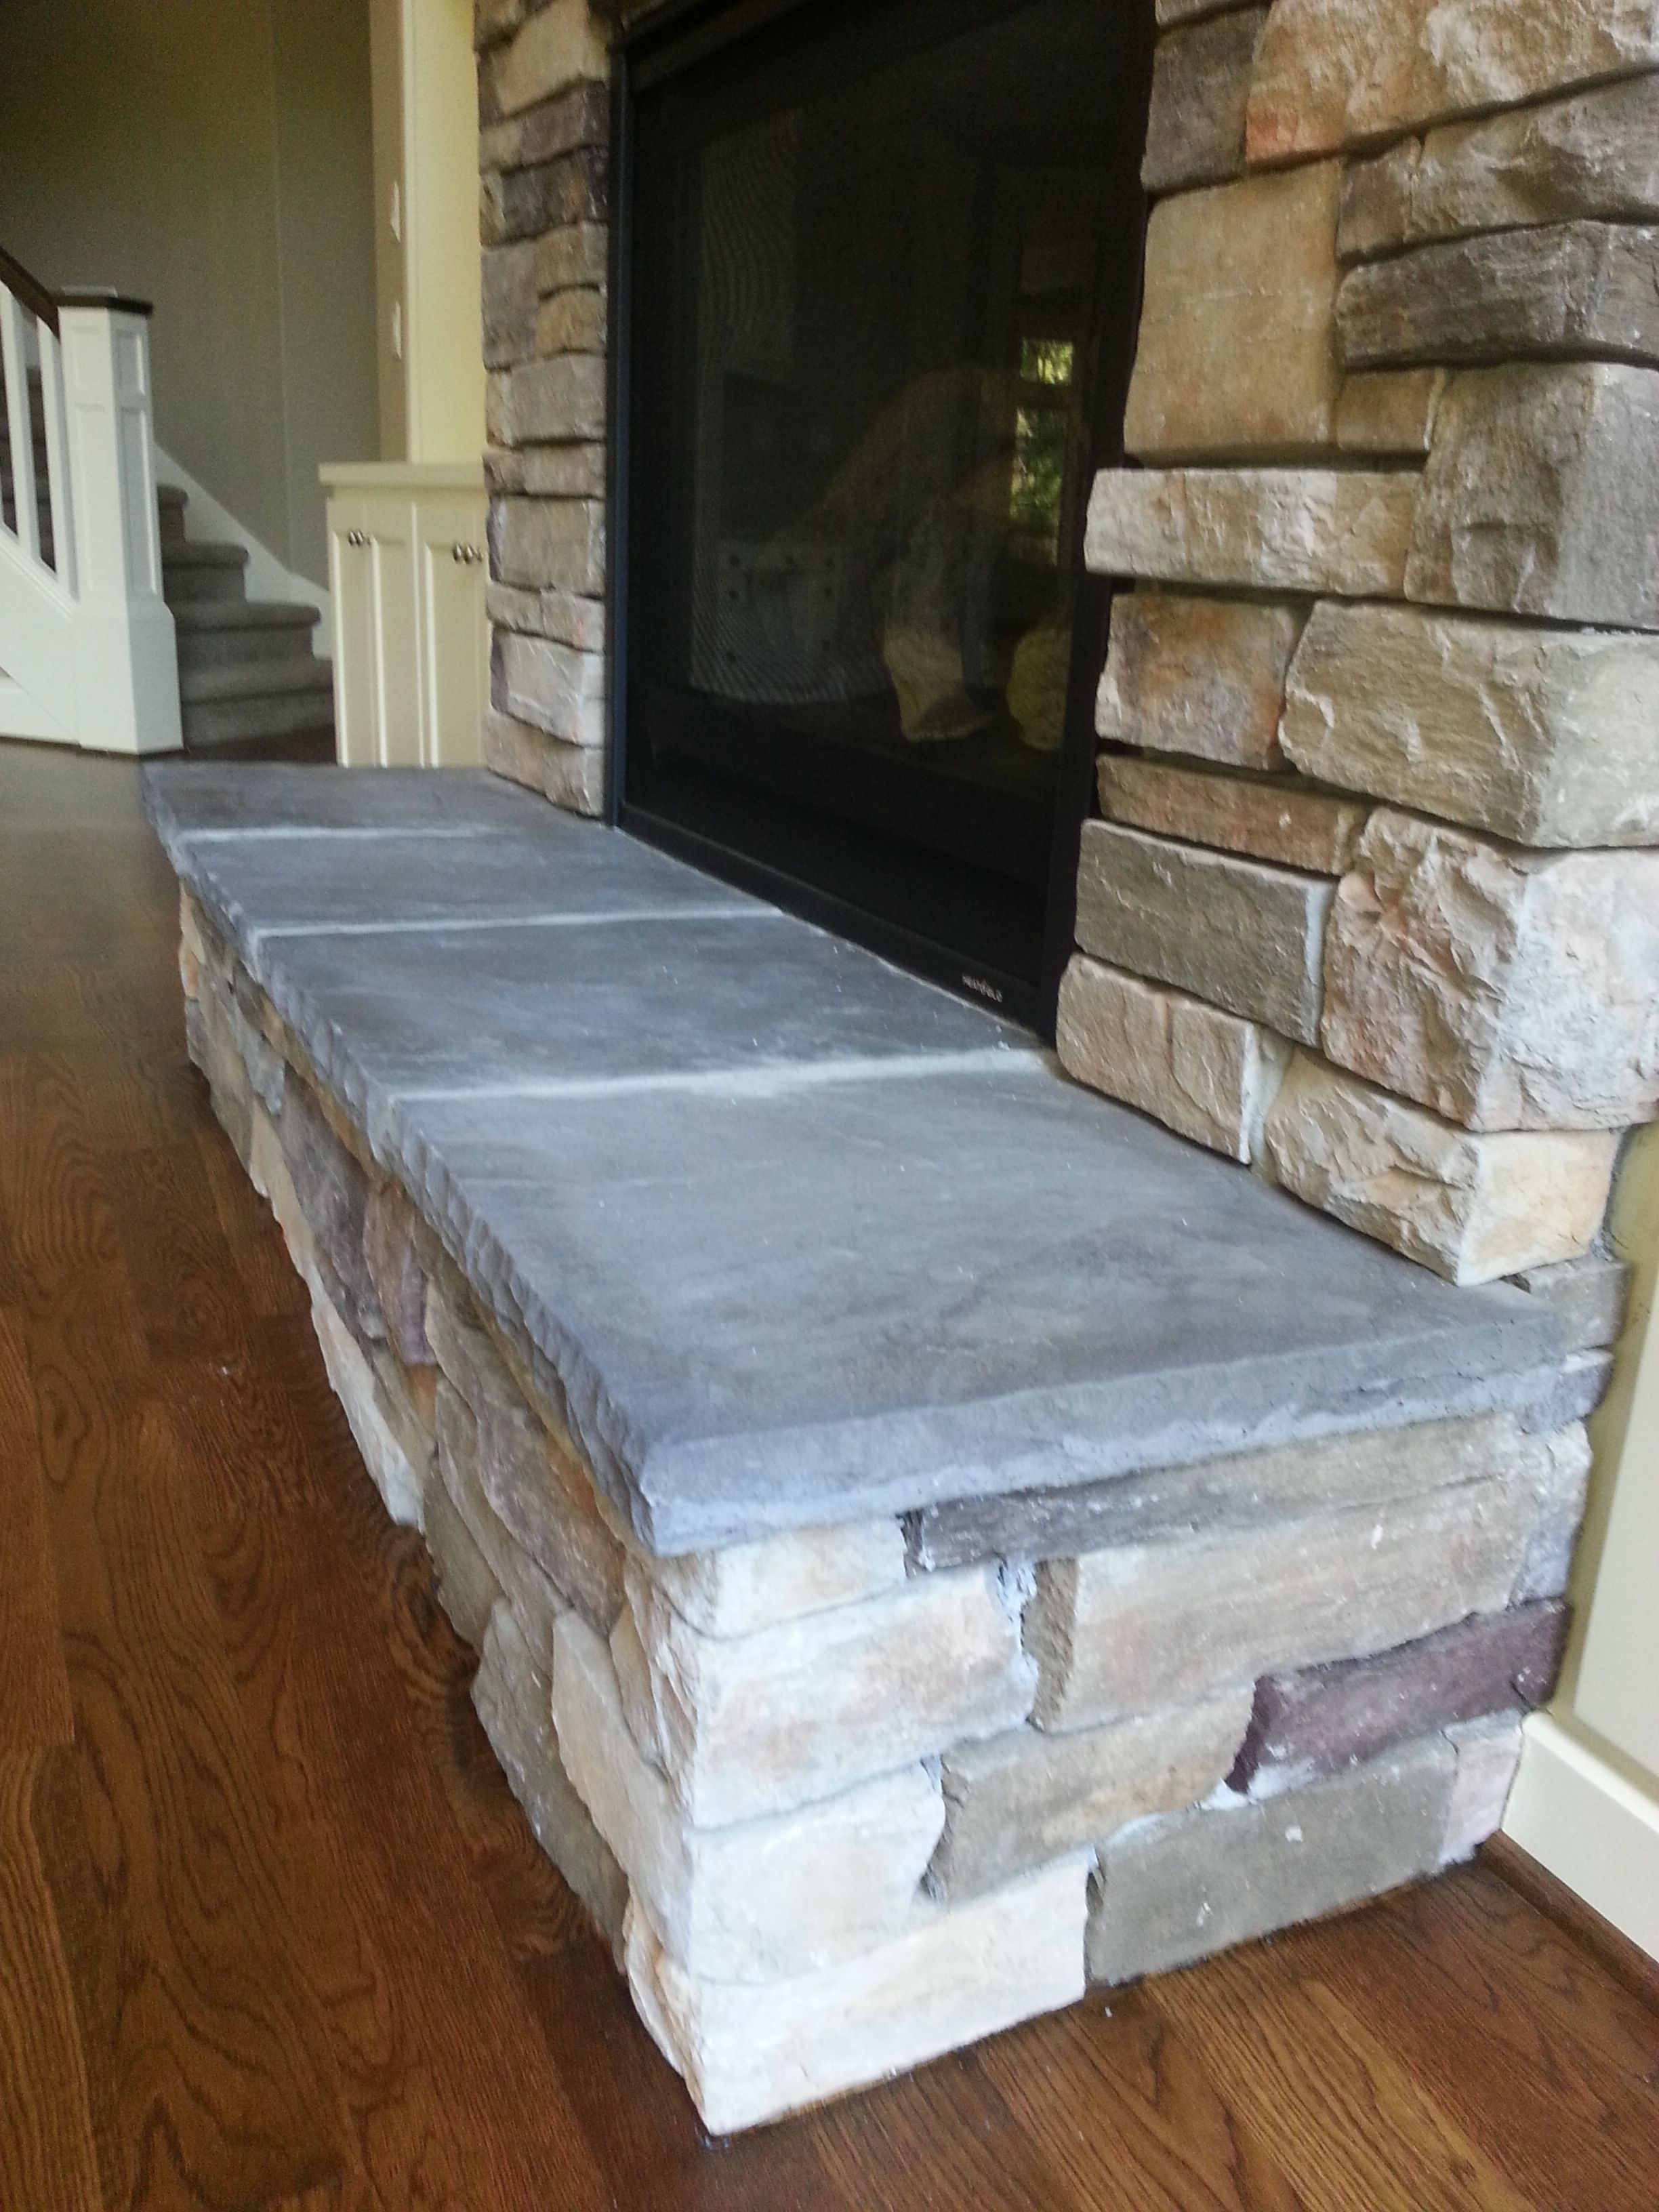 Fireplace New Construction Cultured Stone Raised Hearth Built Ins Around Fireplace Living Room Hardwo Built In Around Fireplace Fireplace Hearth Fireplace